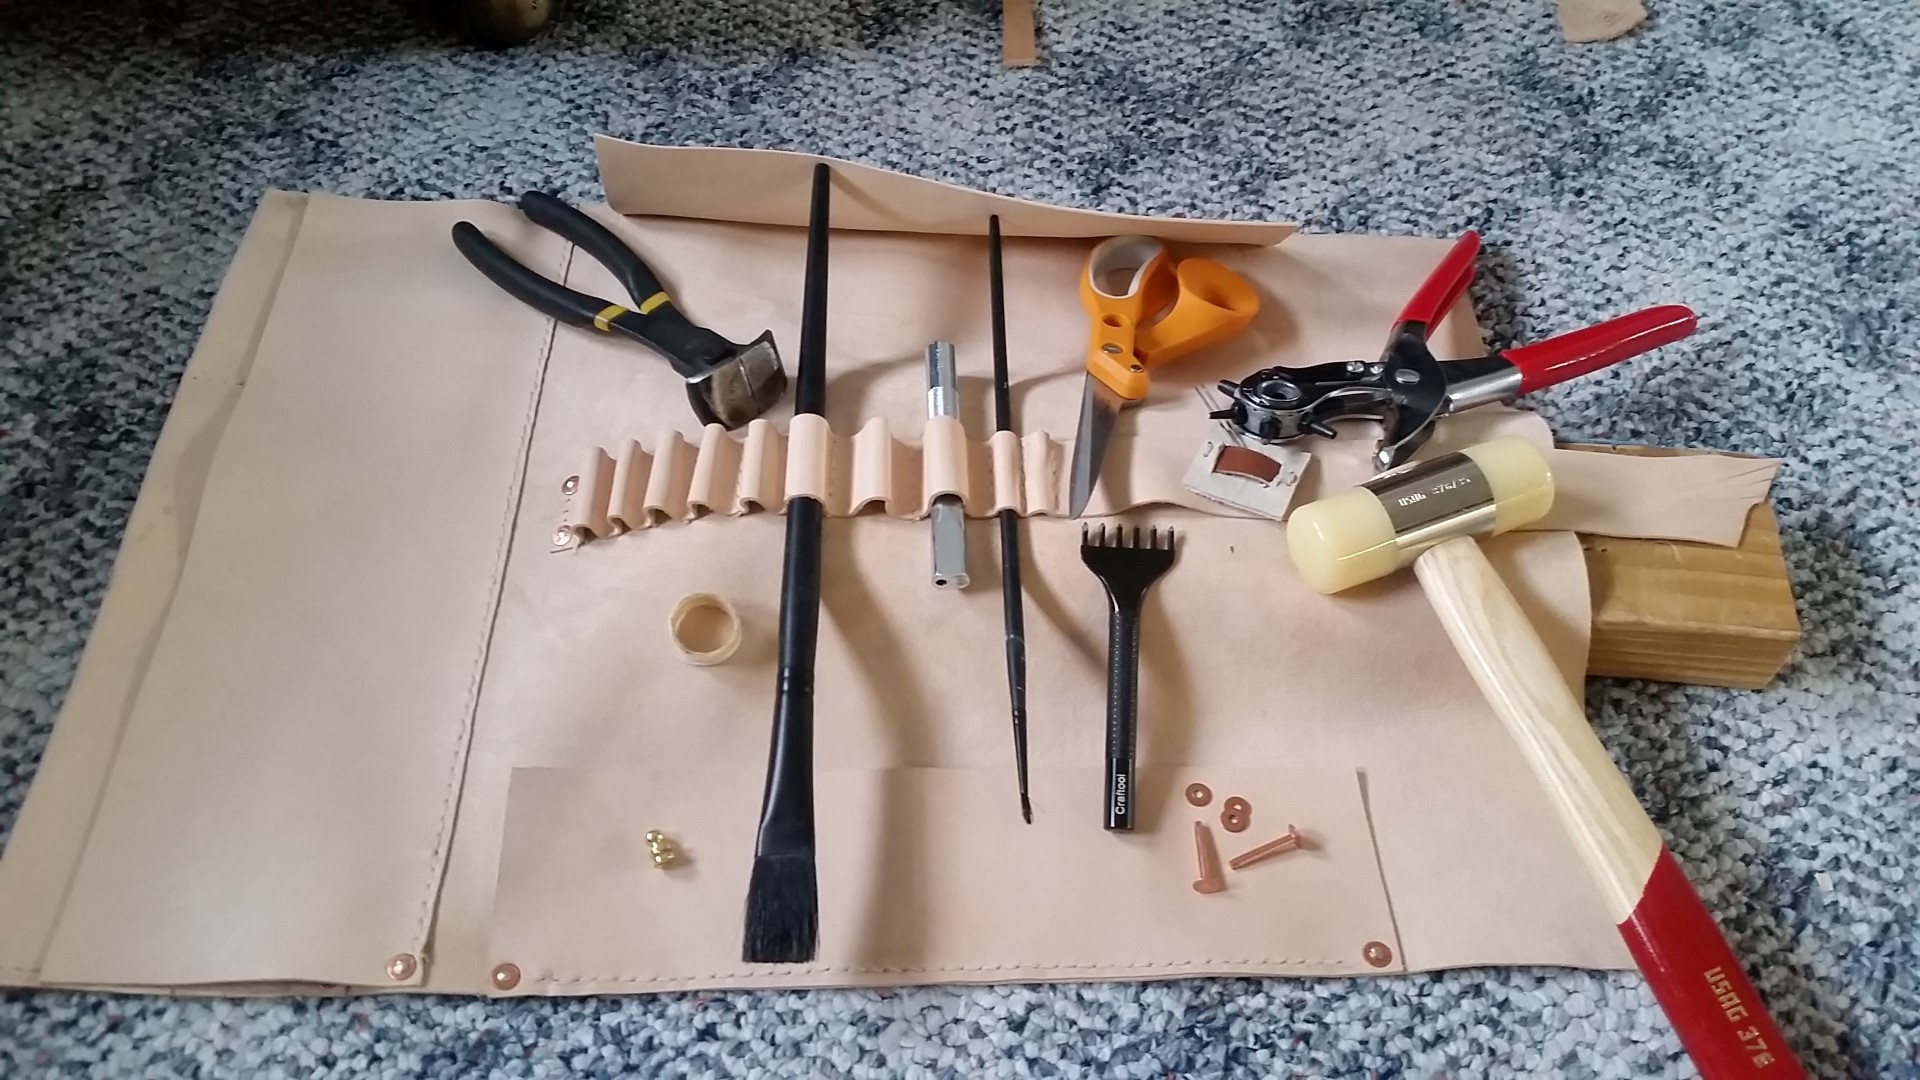 Picture of Measurements, Ingredients and Tools